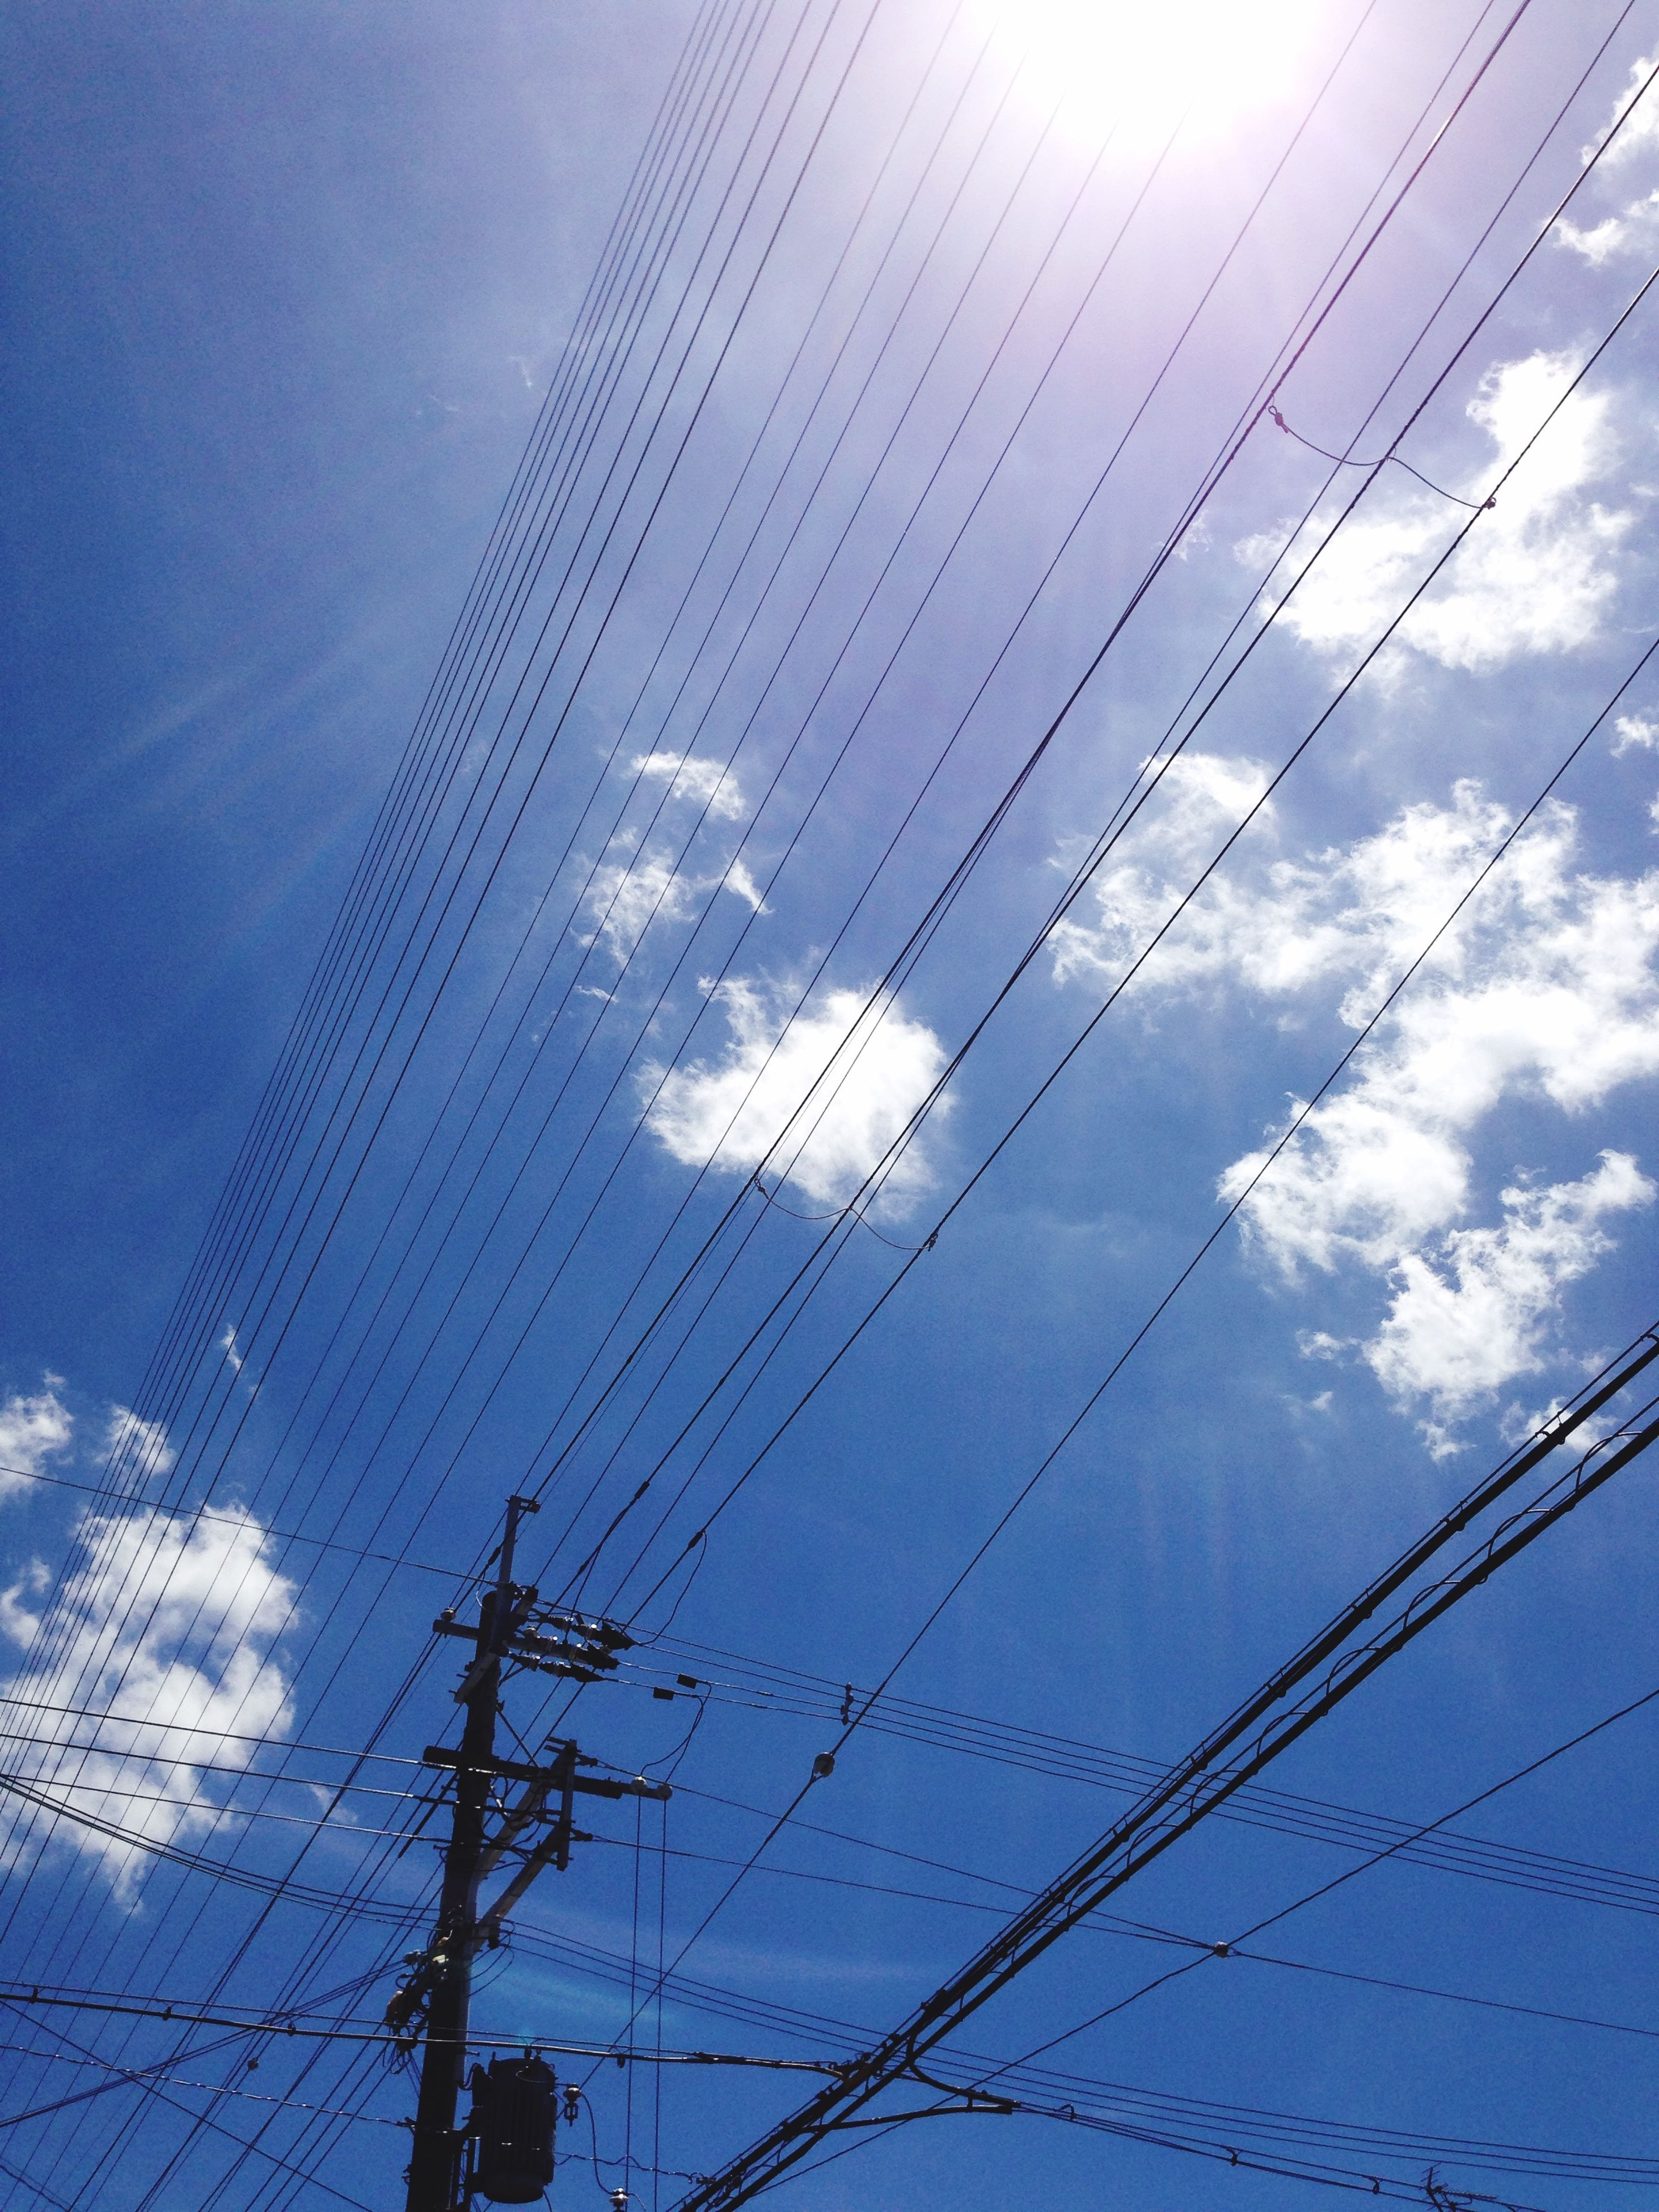 low angle view, sky, power line, cable, blue, connection, electricity, cloud - sky, built structure, electricity pylon, architecture, cloud, day, power supply, technology, outdoors, no people, cloudy, modern, tall - high